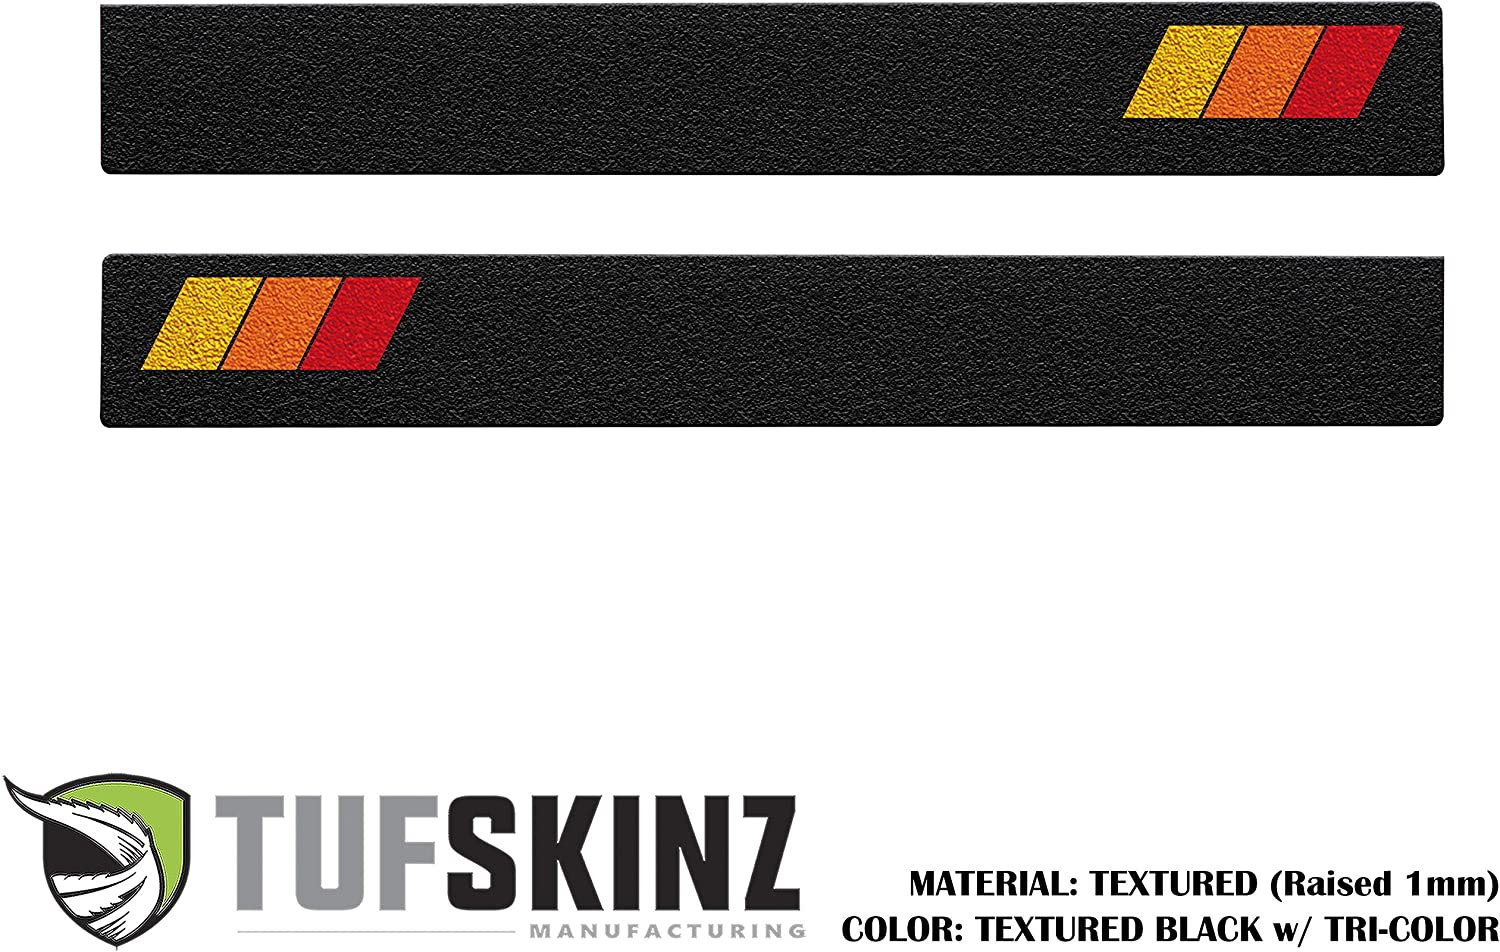 Door Sill Protection Front Doors, Black Textured w//Tri-Color Design Compatible with 2005-Up Tacoma 2 Piece Kit TufSkinz